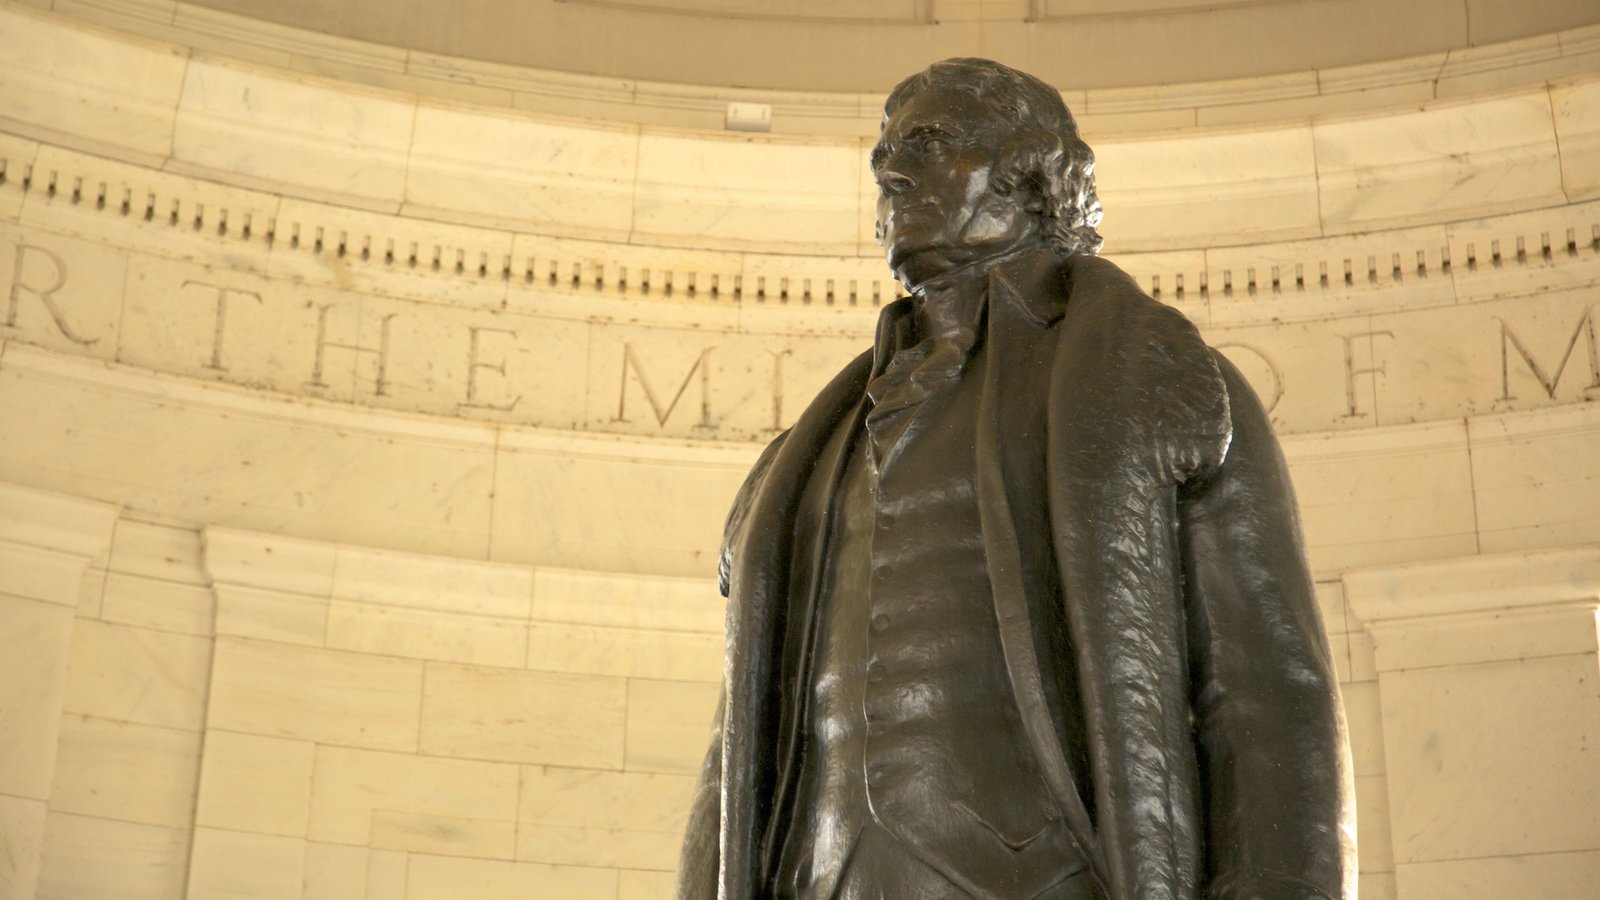 Jefferson Memorial which includes a memorial and interior views